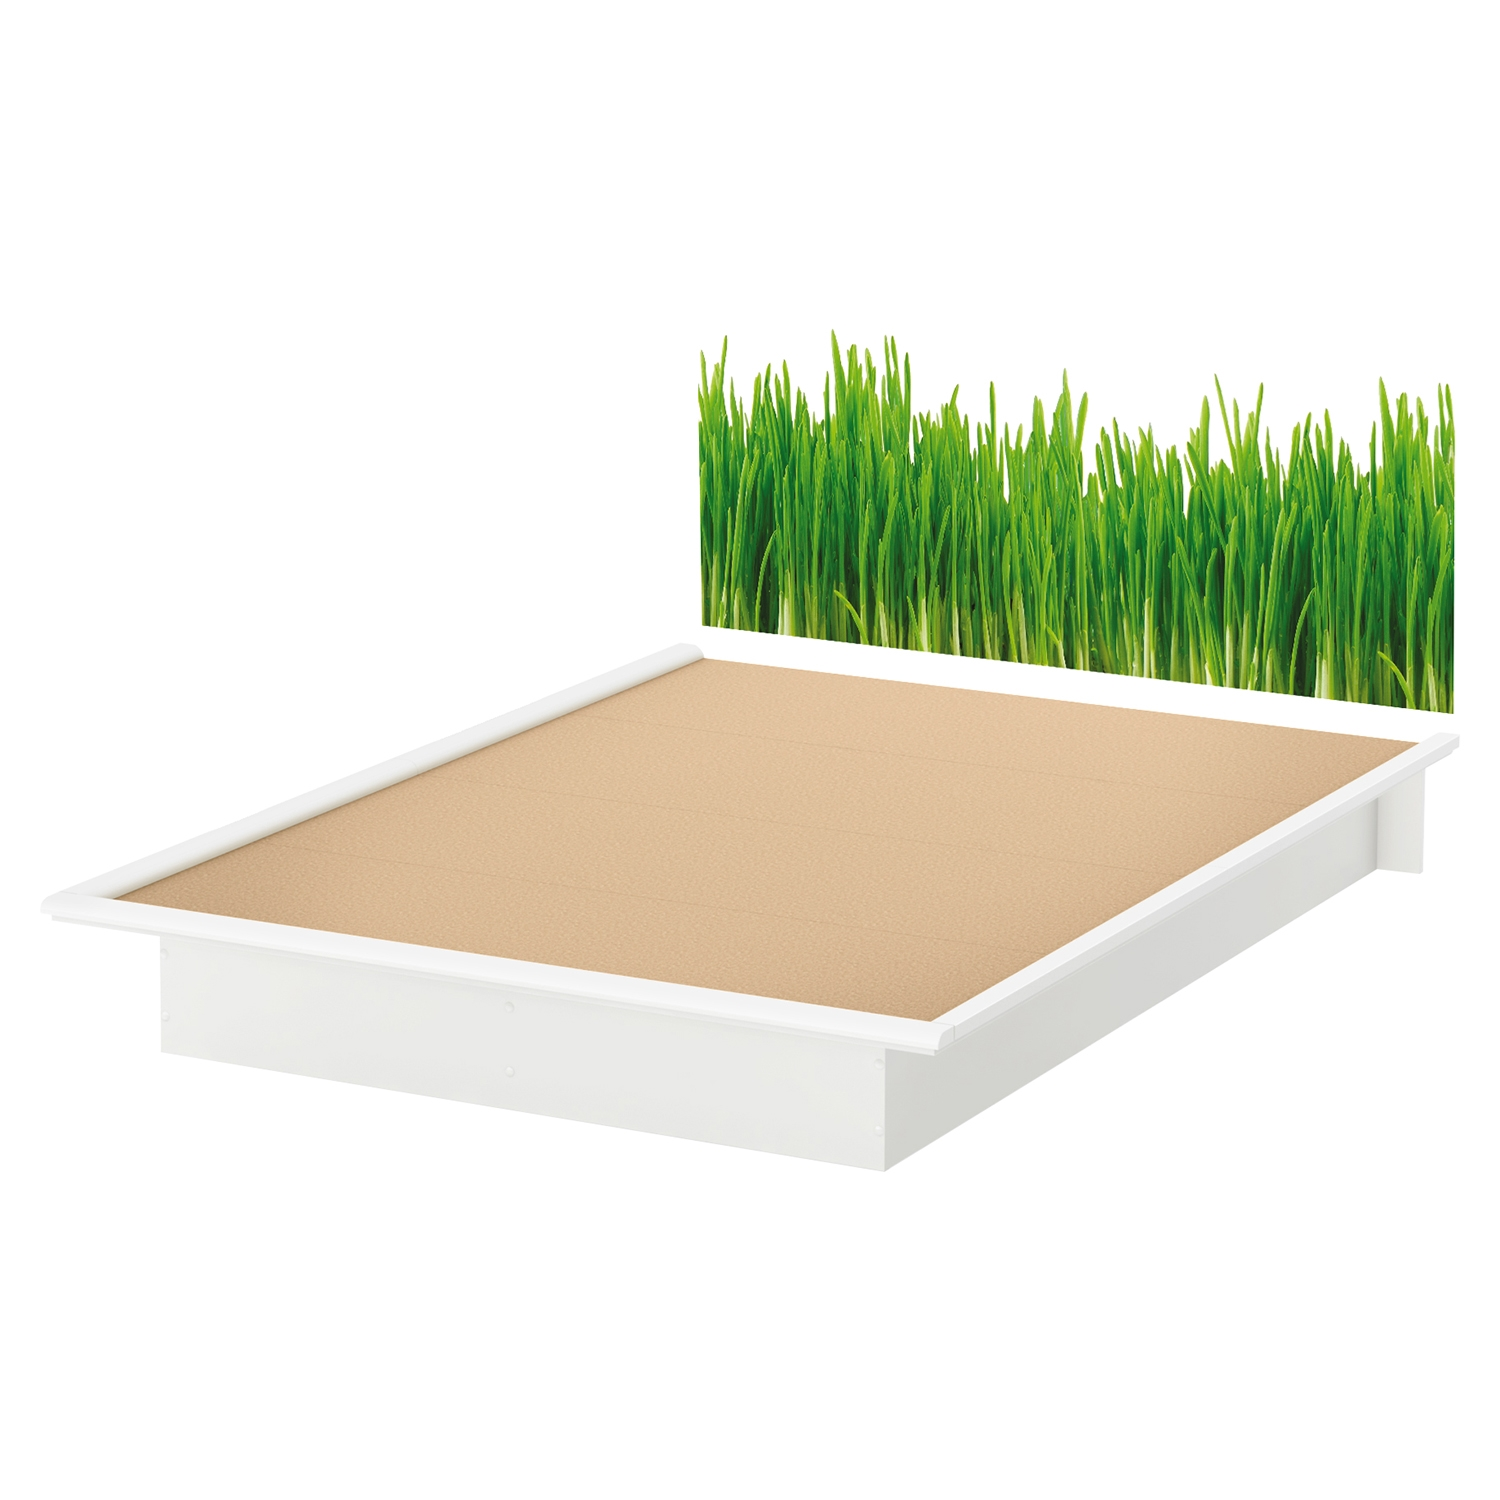 Step One Queen Platform Bed - Grass Decal, Pure White